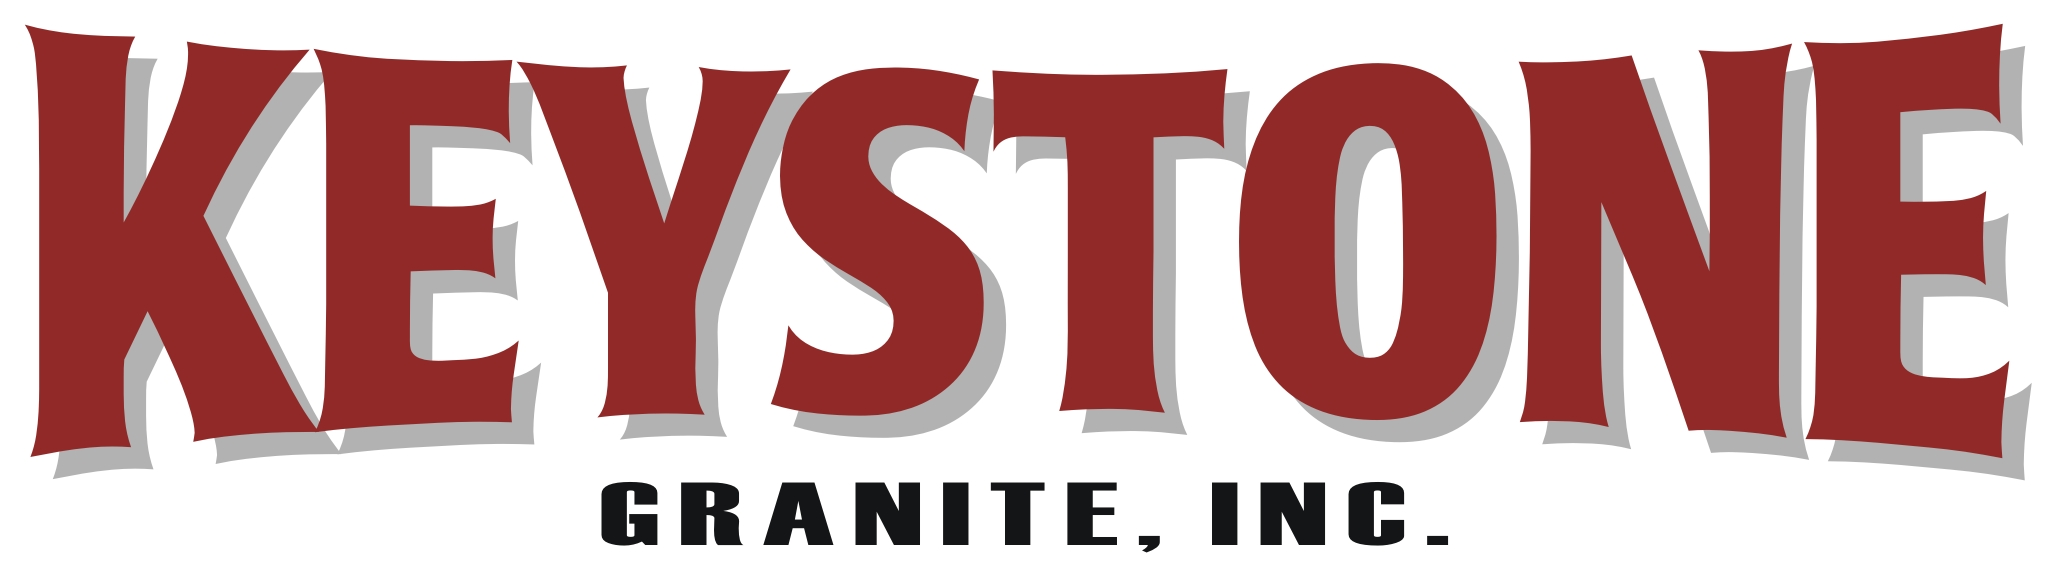 Keystone Granite Inc Logo